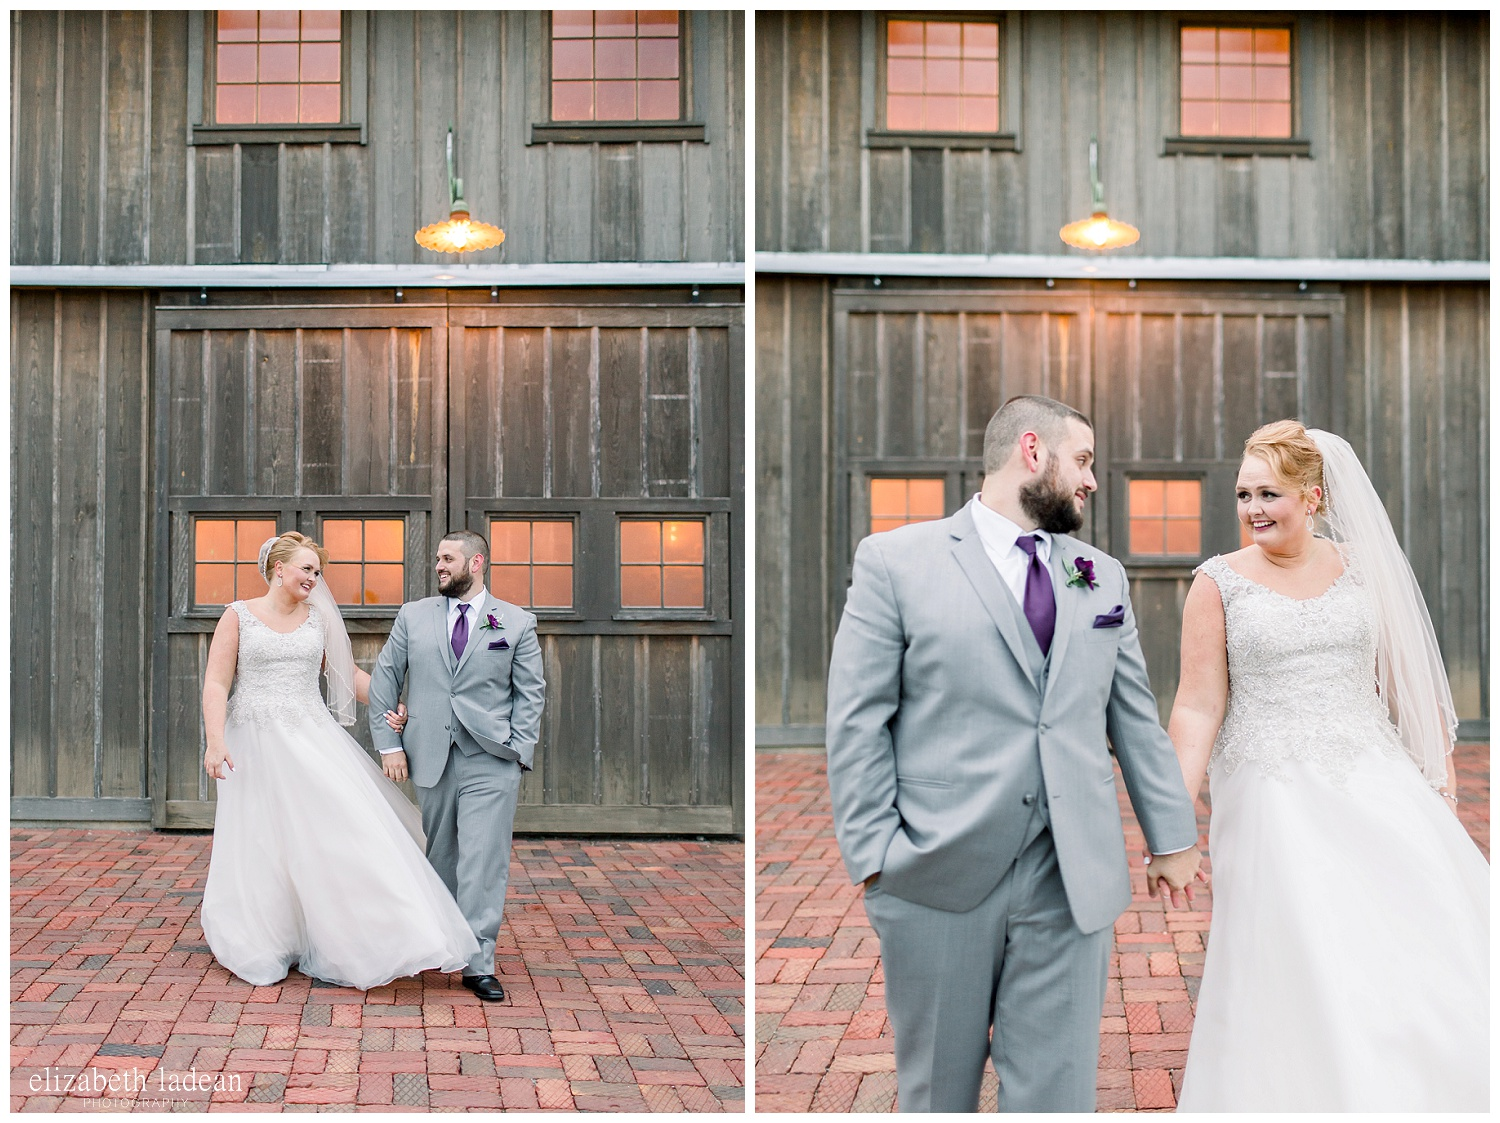 Weston-Timber-Barn-Wedding-Photography-L+A-elizabeth-ladean0photo_1905.jpg